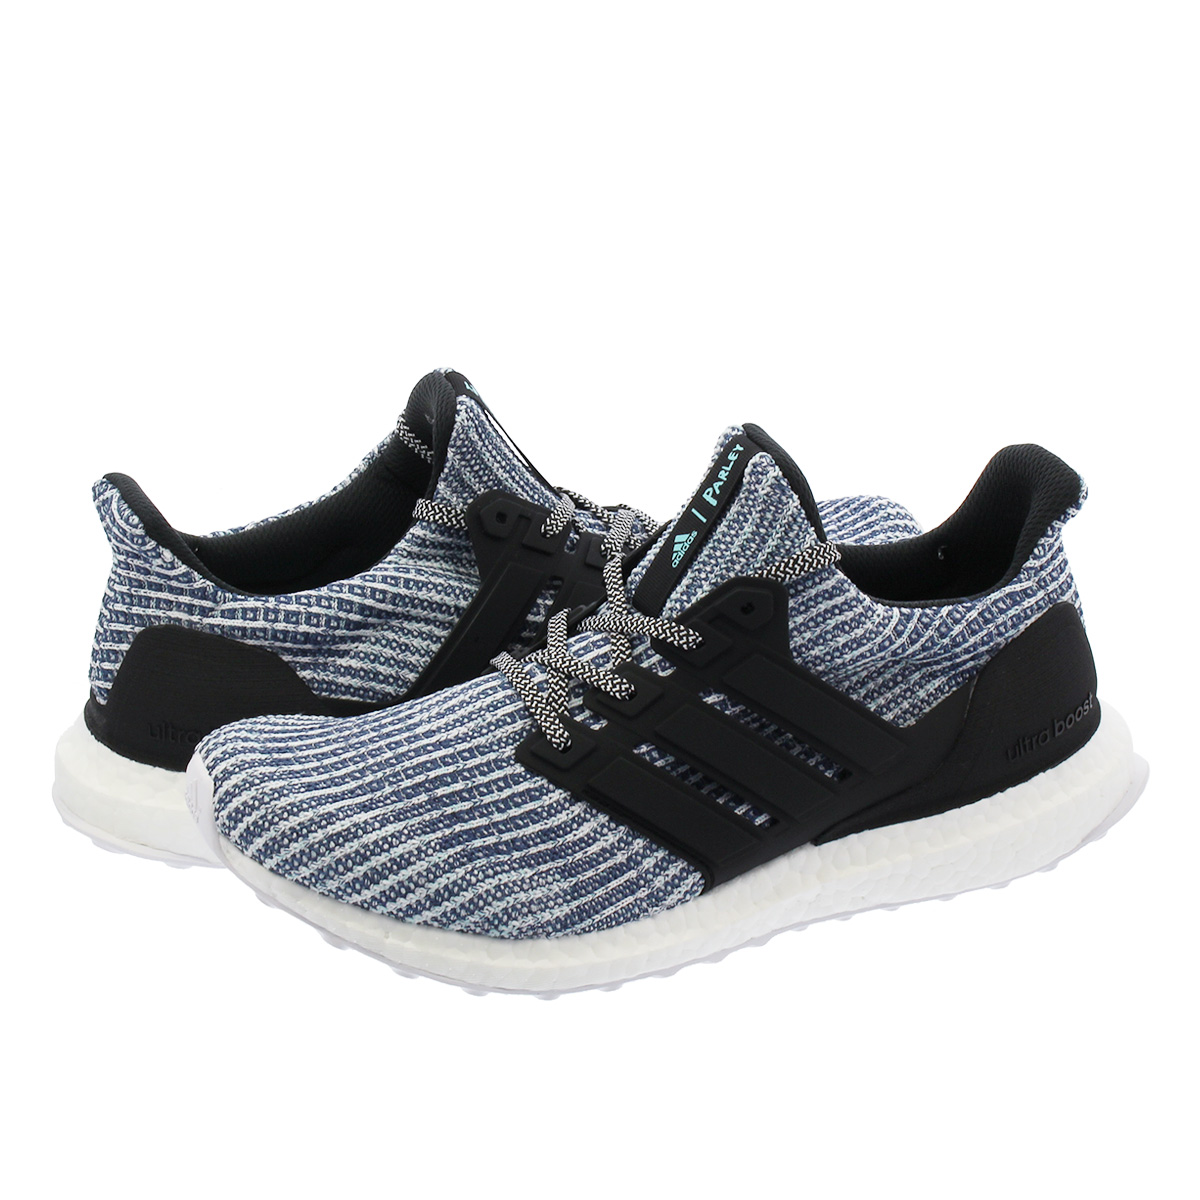 70363779d adidas ULTRA BOOST PARLEY Adidas ultra boost gone lei WHITE CARBON BLUE  SPIRIT bc0248